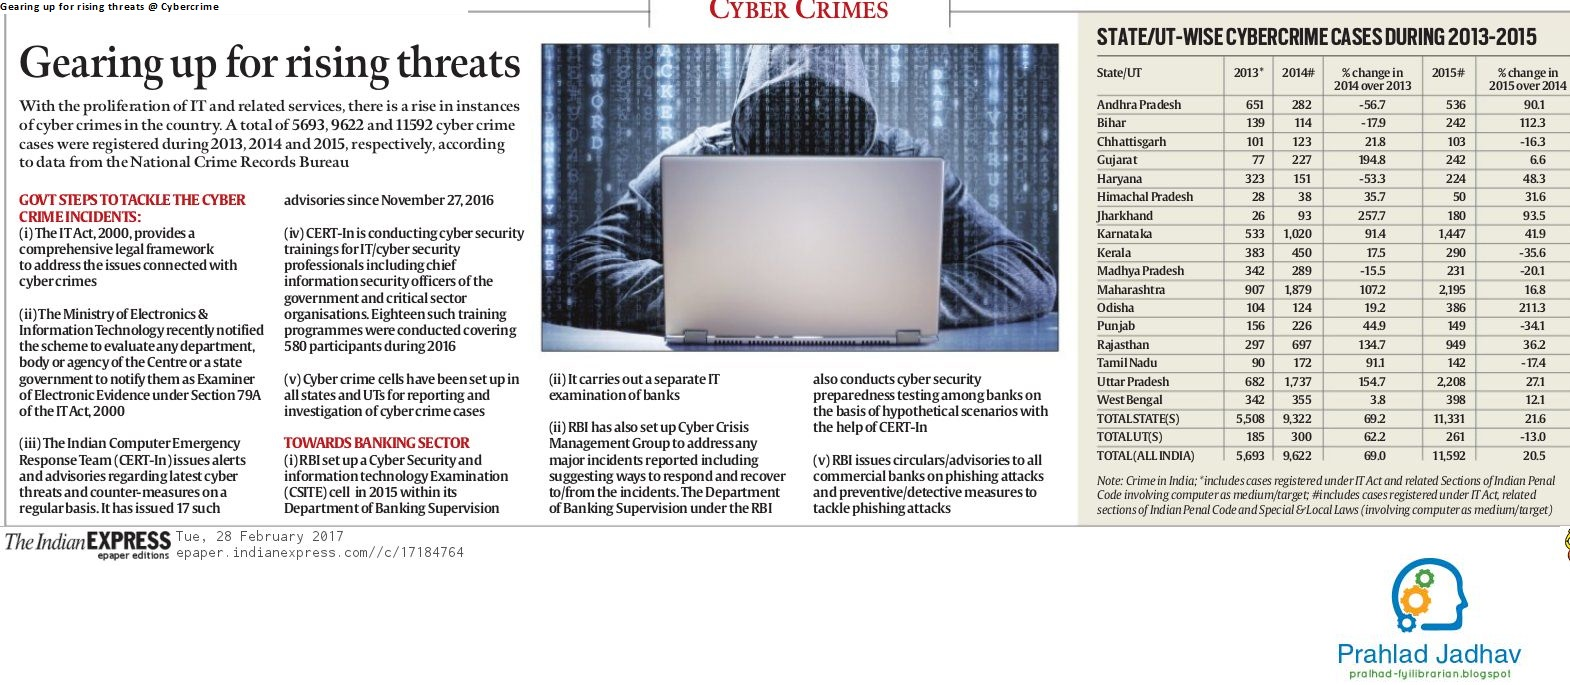 FYI@Librarian: Gearing up for rising threats @ Cybercrime